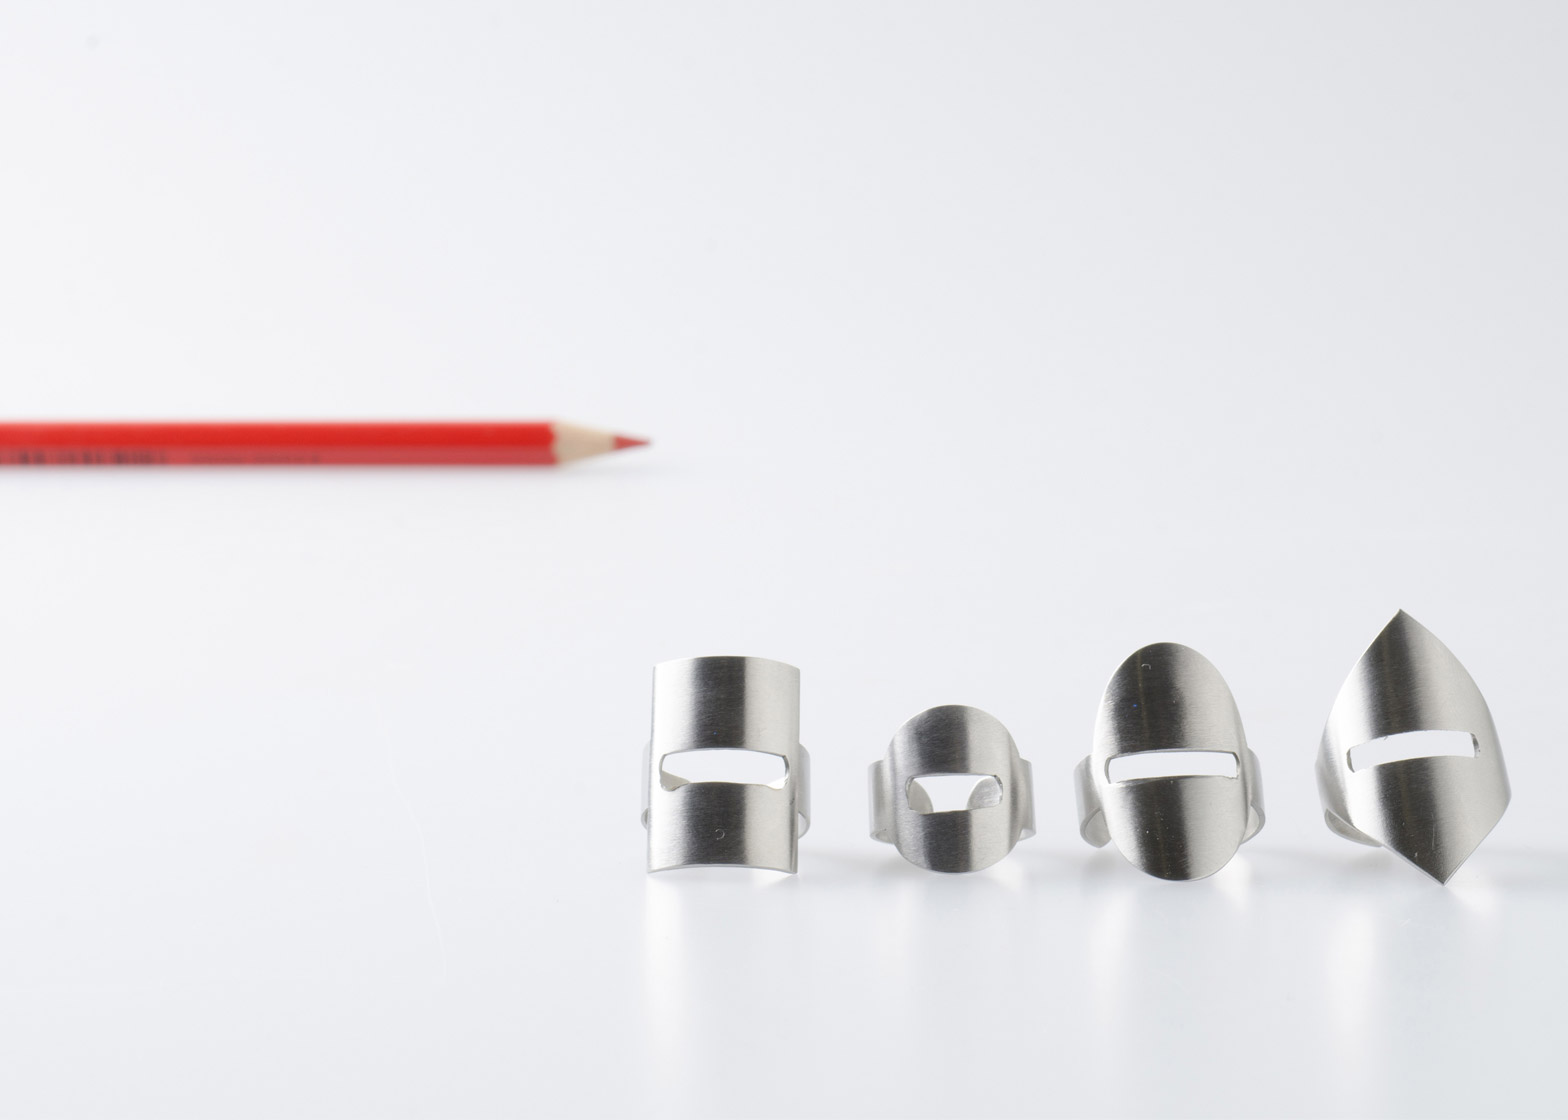 innovative-pencil-sharpeners-hisheji (9)